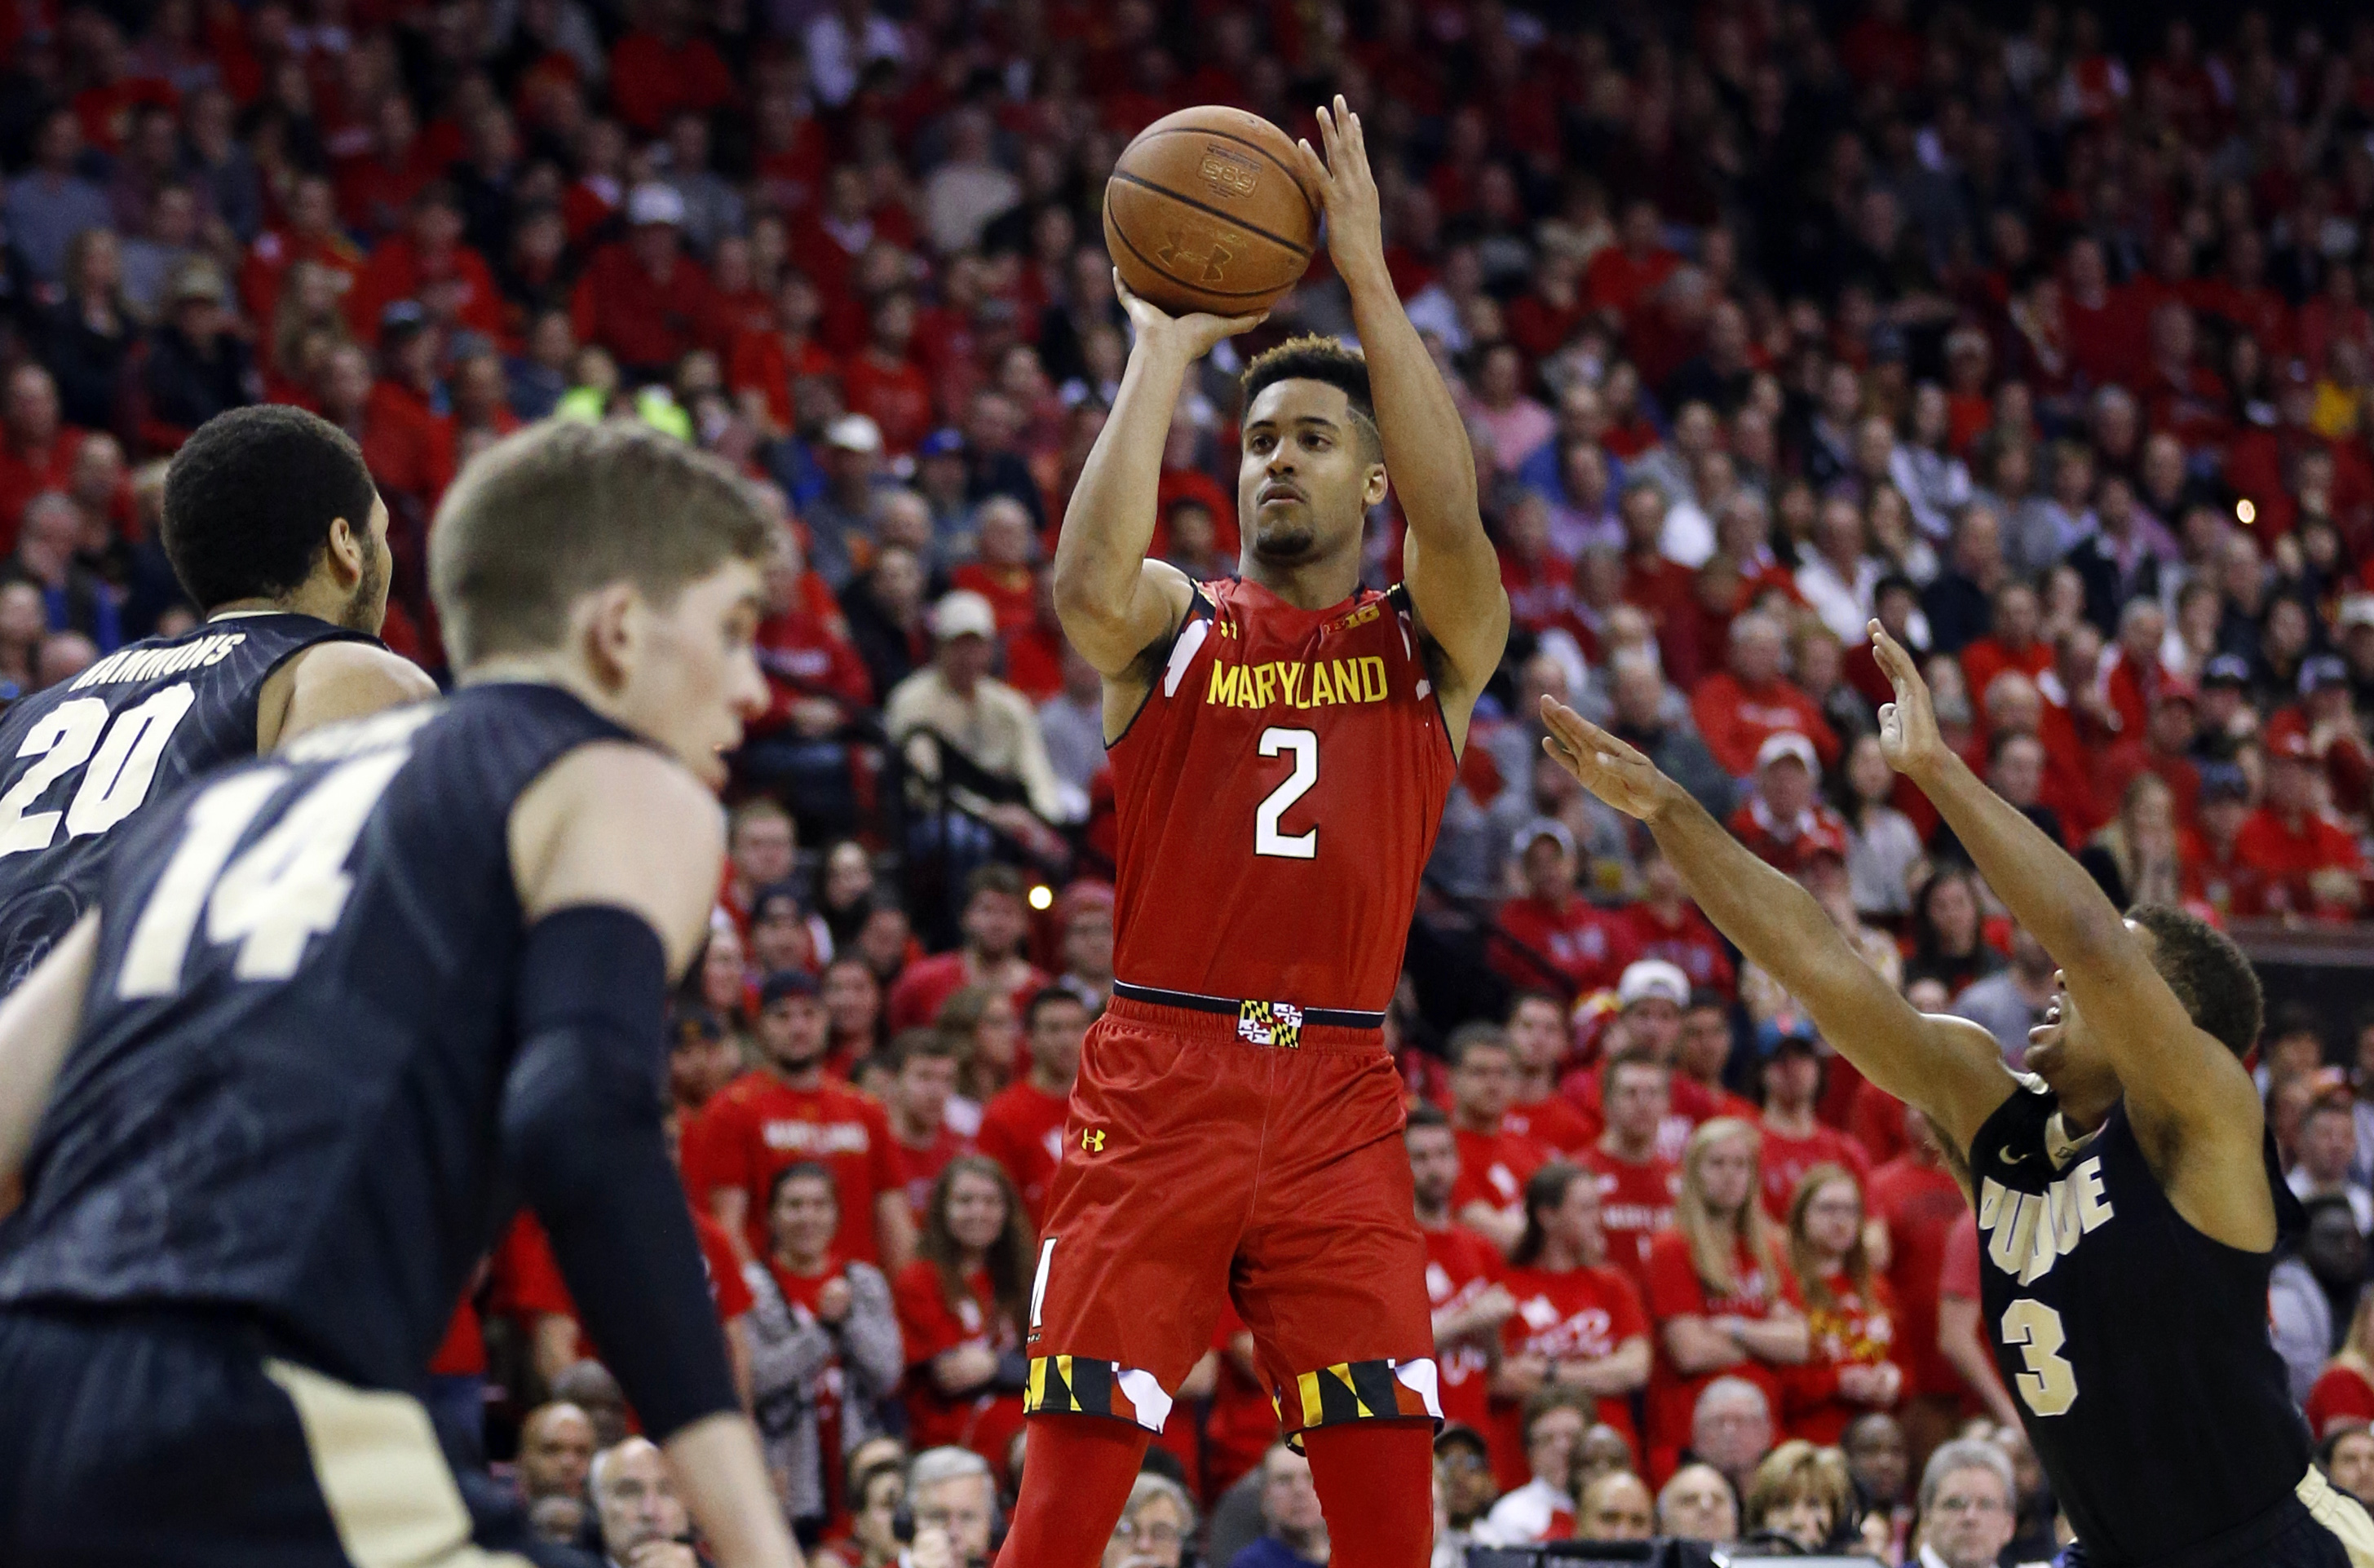 FILE - In this Feb. 6, 2015, file photo, Maryland guard Melo Trimble, center, shoots over Purdue center A.J. Hammons (20), guard Ryan Cline (14) and guard P.J. Thompson in the second half of an NCAA college basketball game, in College Park, Md. Tenth-rank